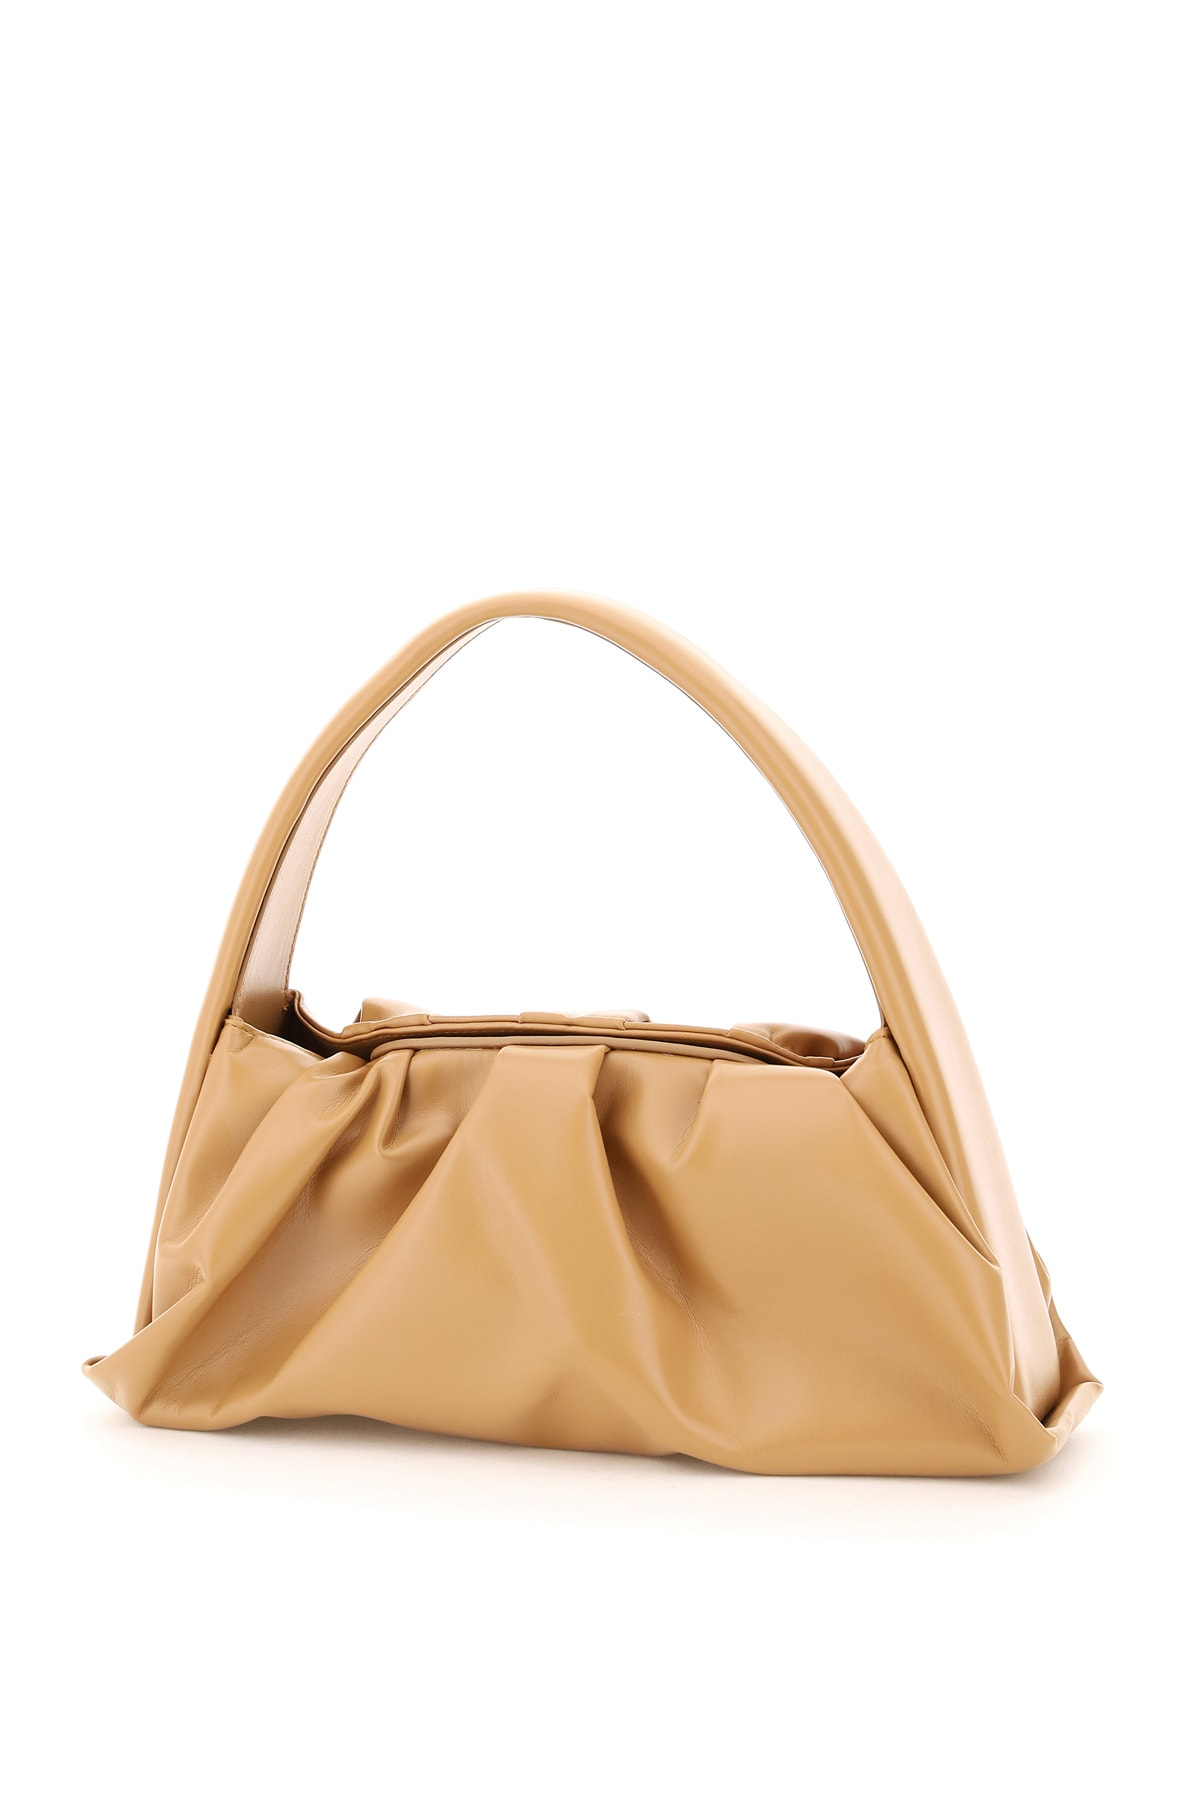 Themoirè HERA BASIC HOBO BAGUETTE VEGAN LEATHER BAG